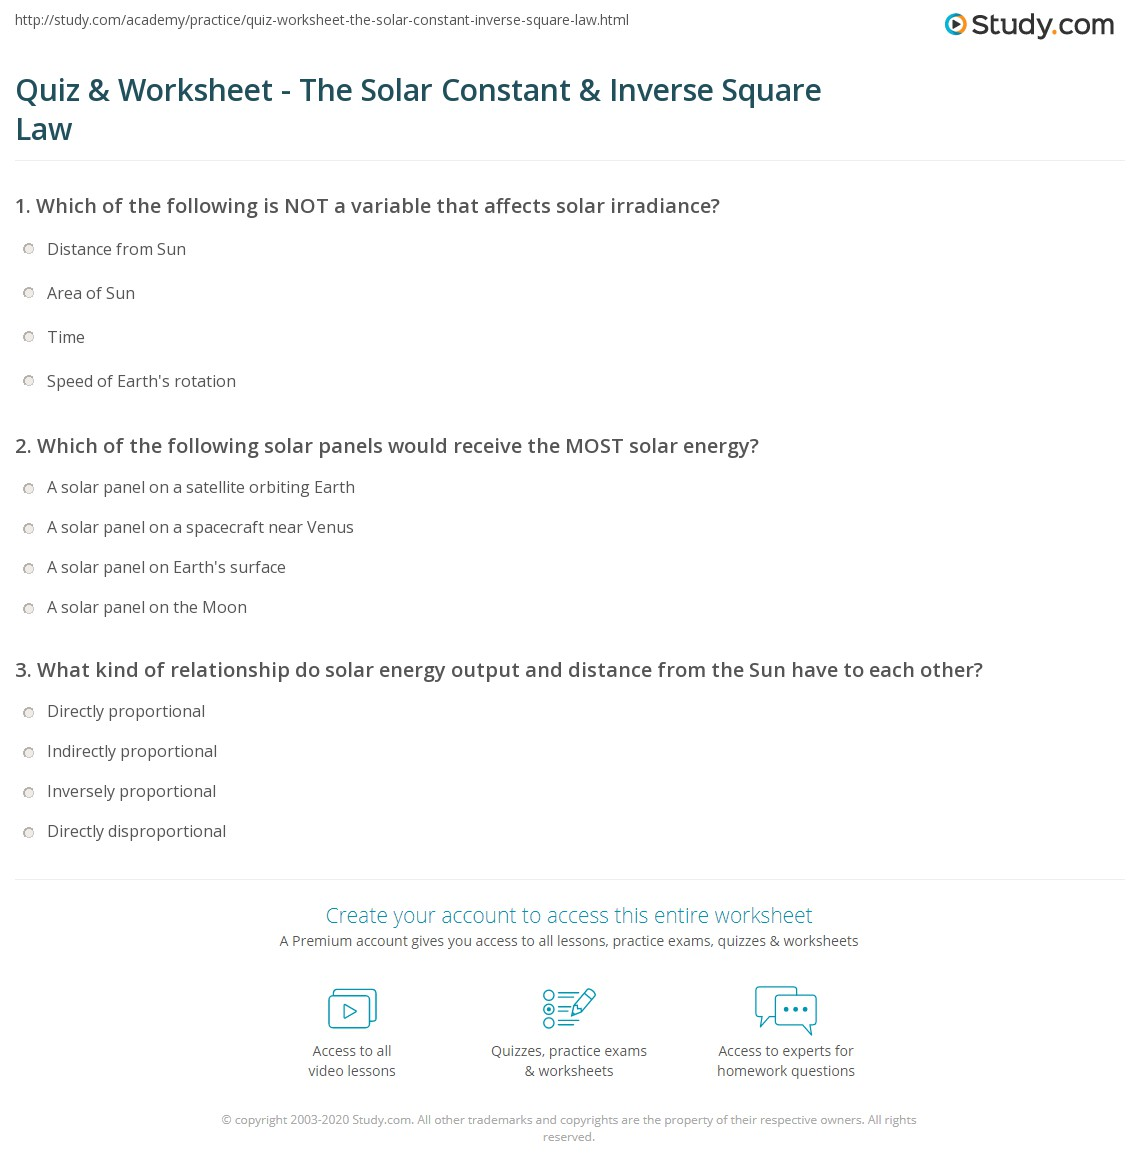 Worksheets Solar Energy Worksheet quiz worksheet the solar constant inverse square law study com which of following panels would receive most energy